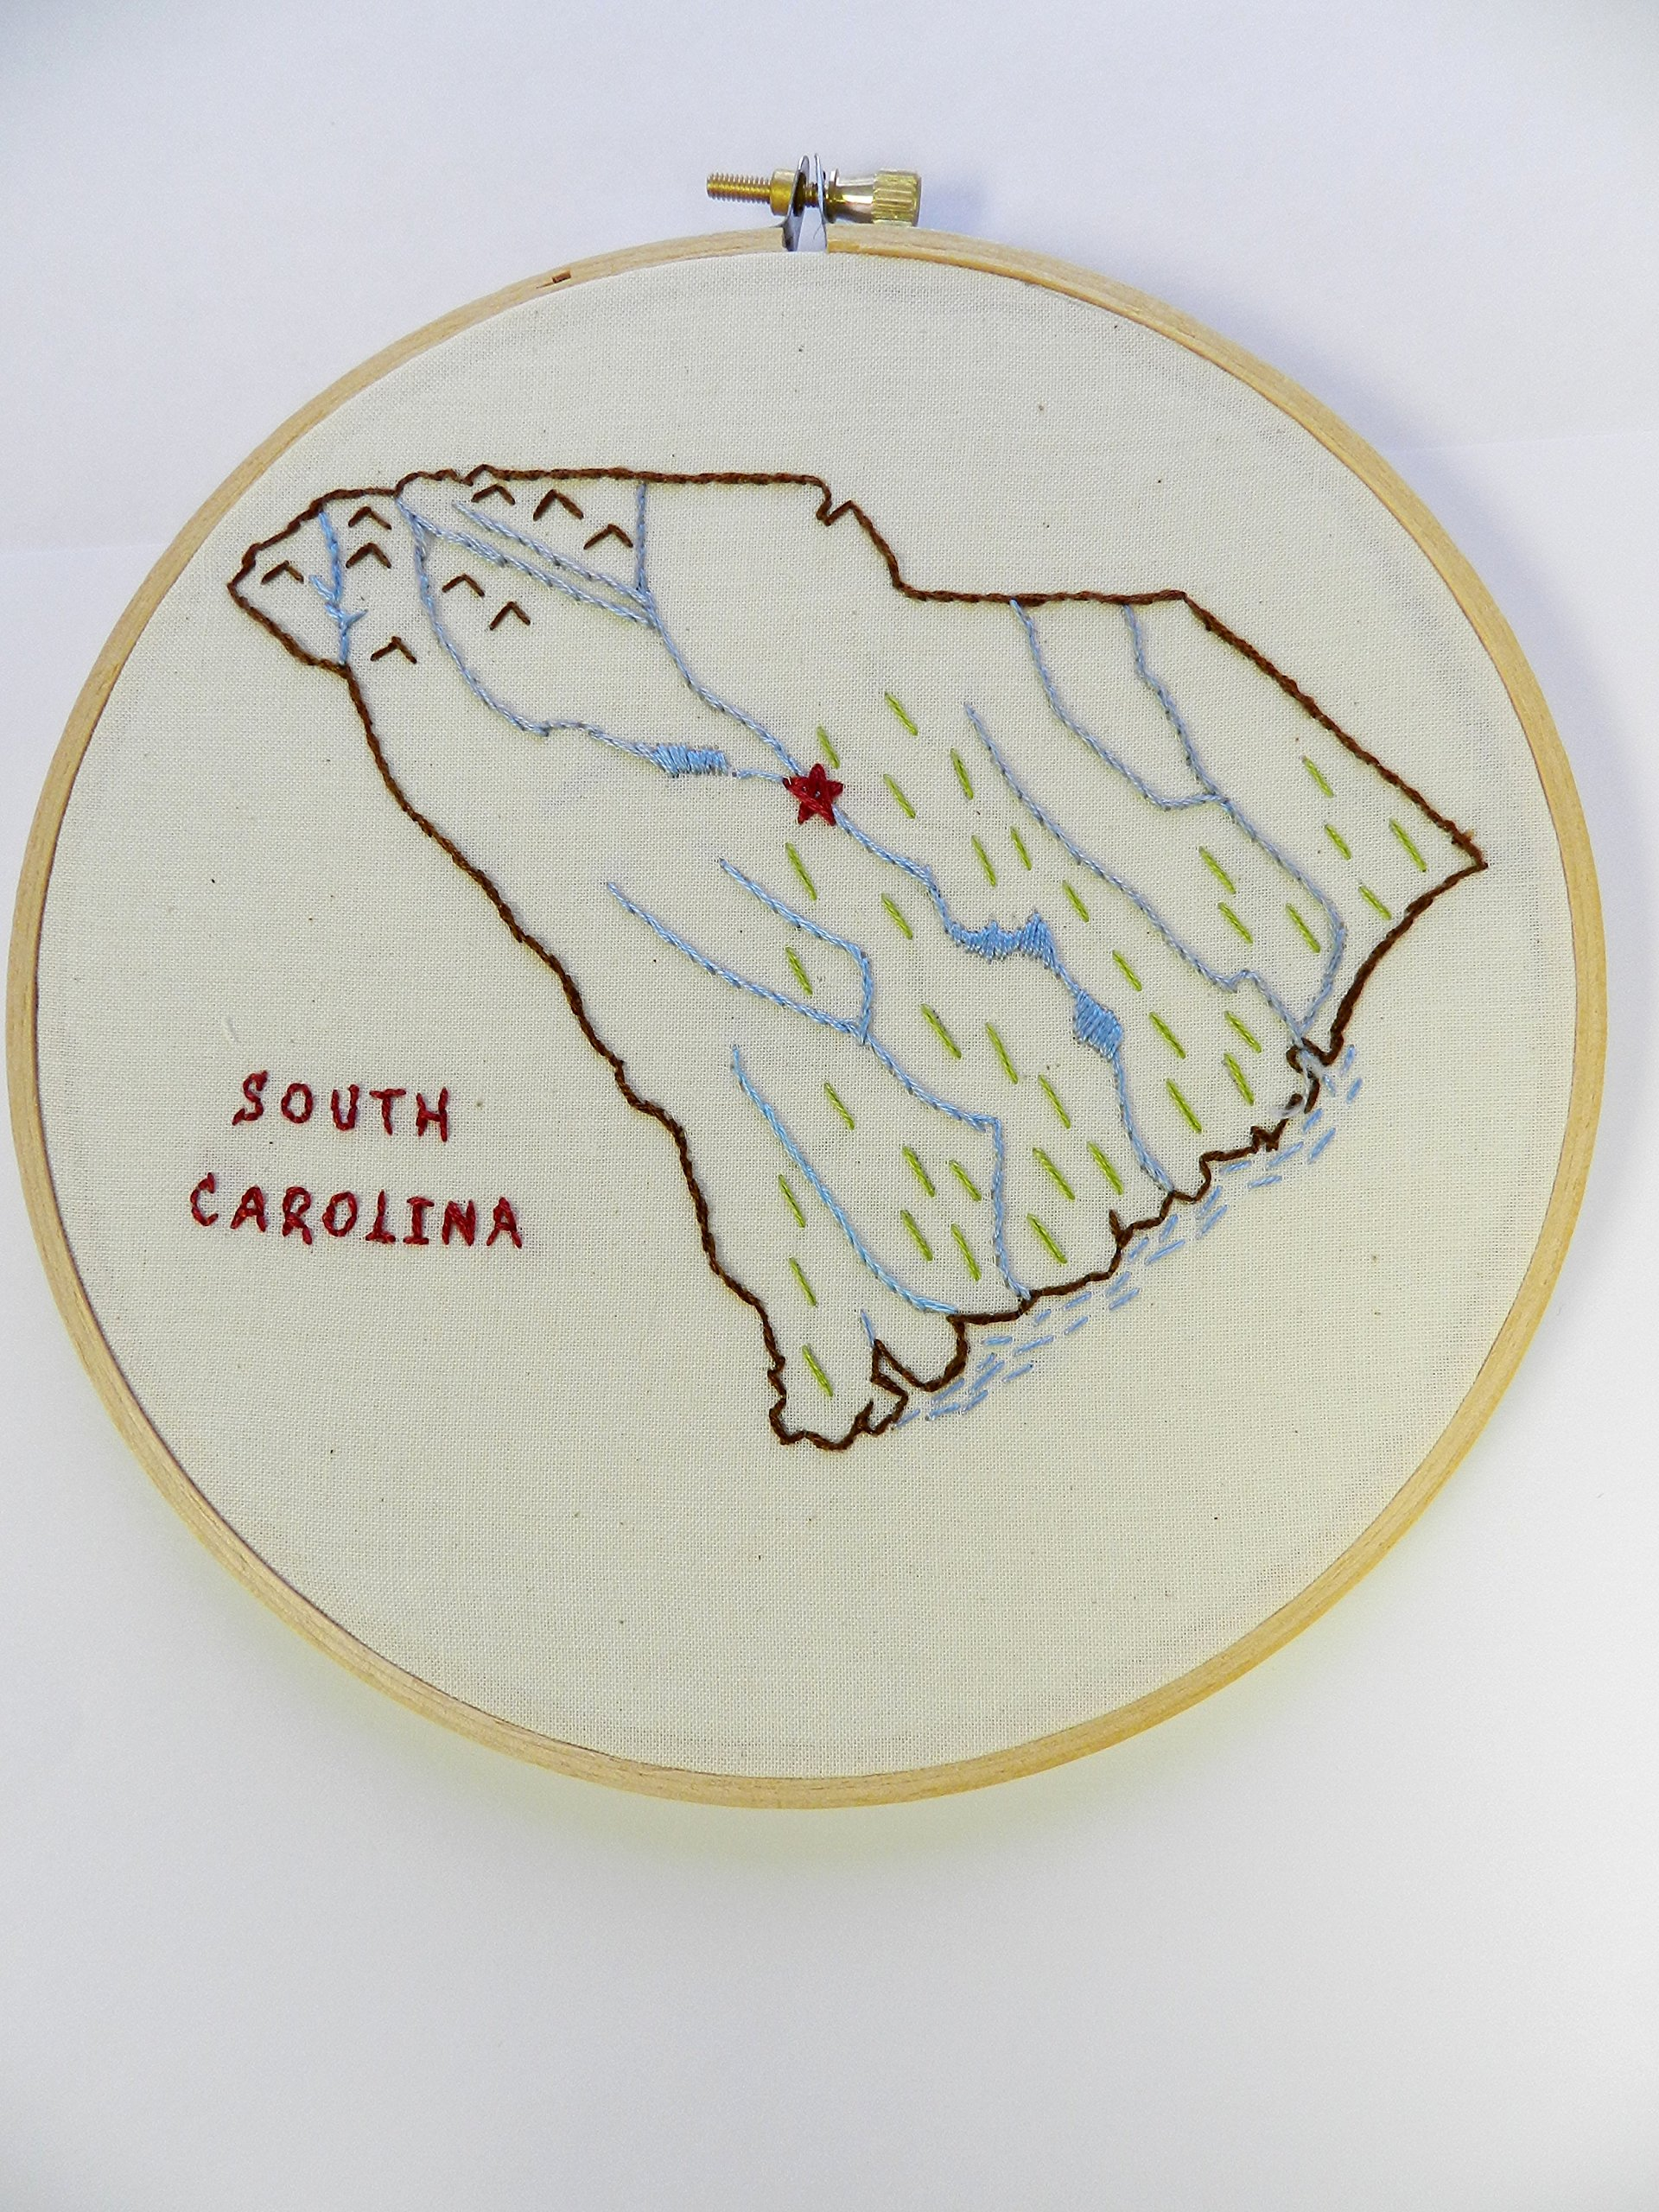 South Carolina. Embroidery Hoop Wall Art. State Outline Map art. Home Love Map. Retirement. Teacher Gift. Coastal Home State. Home Map.